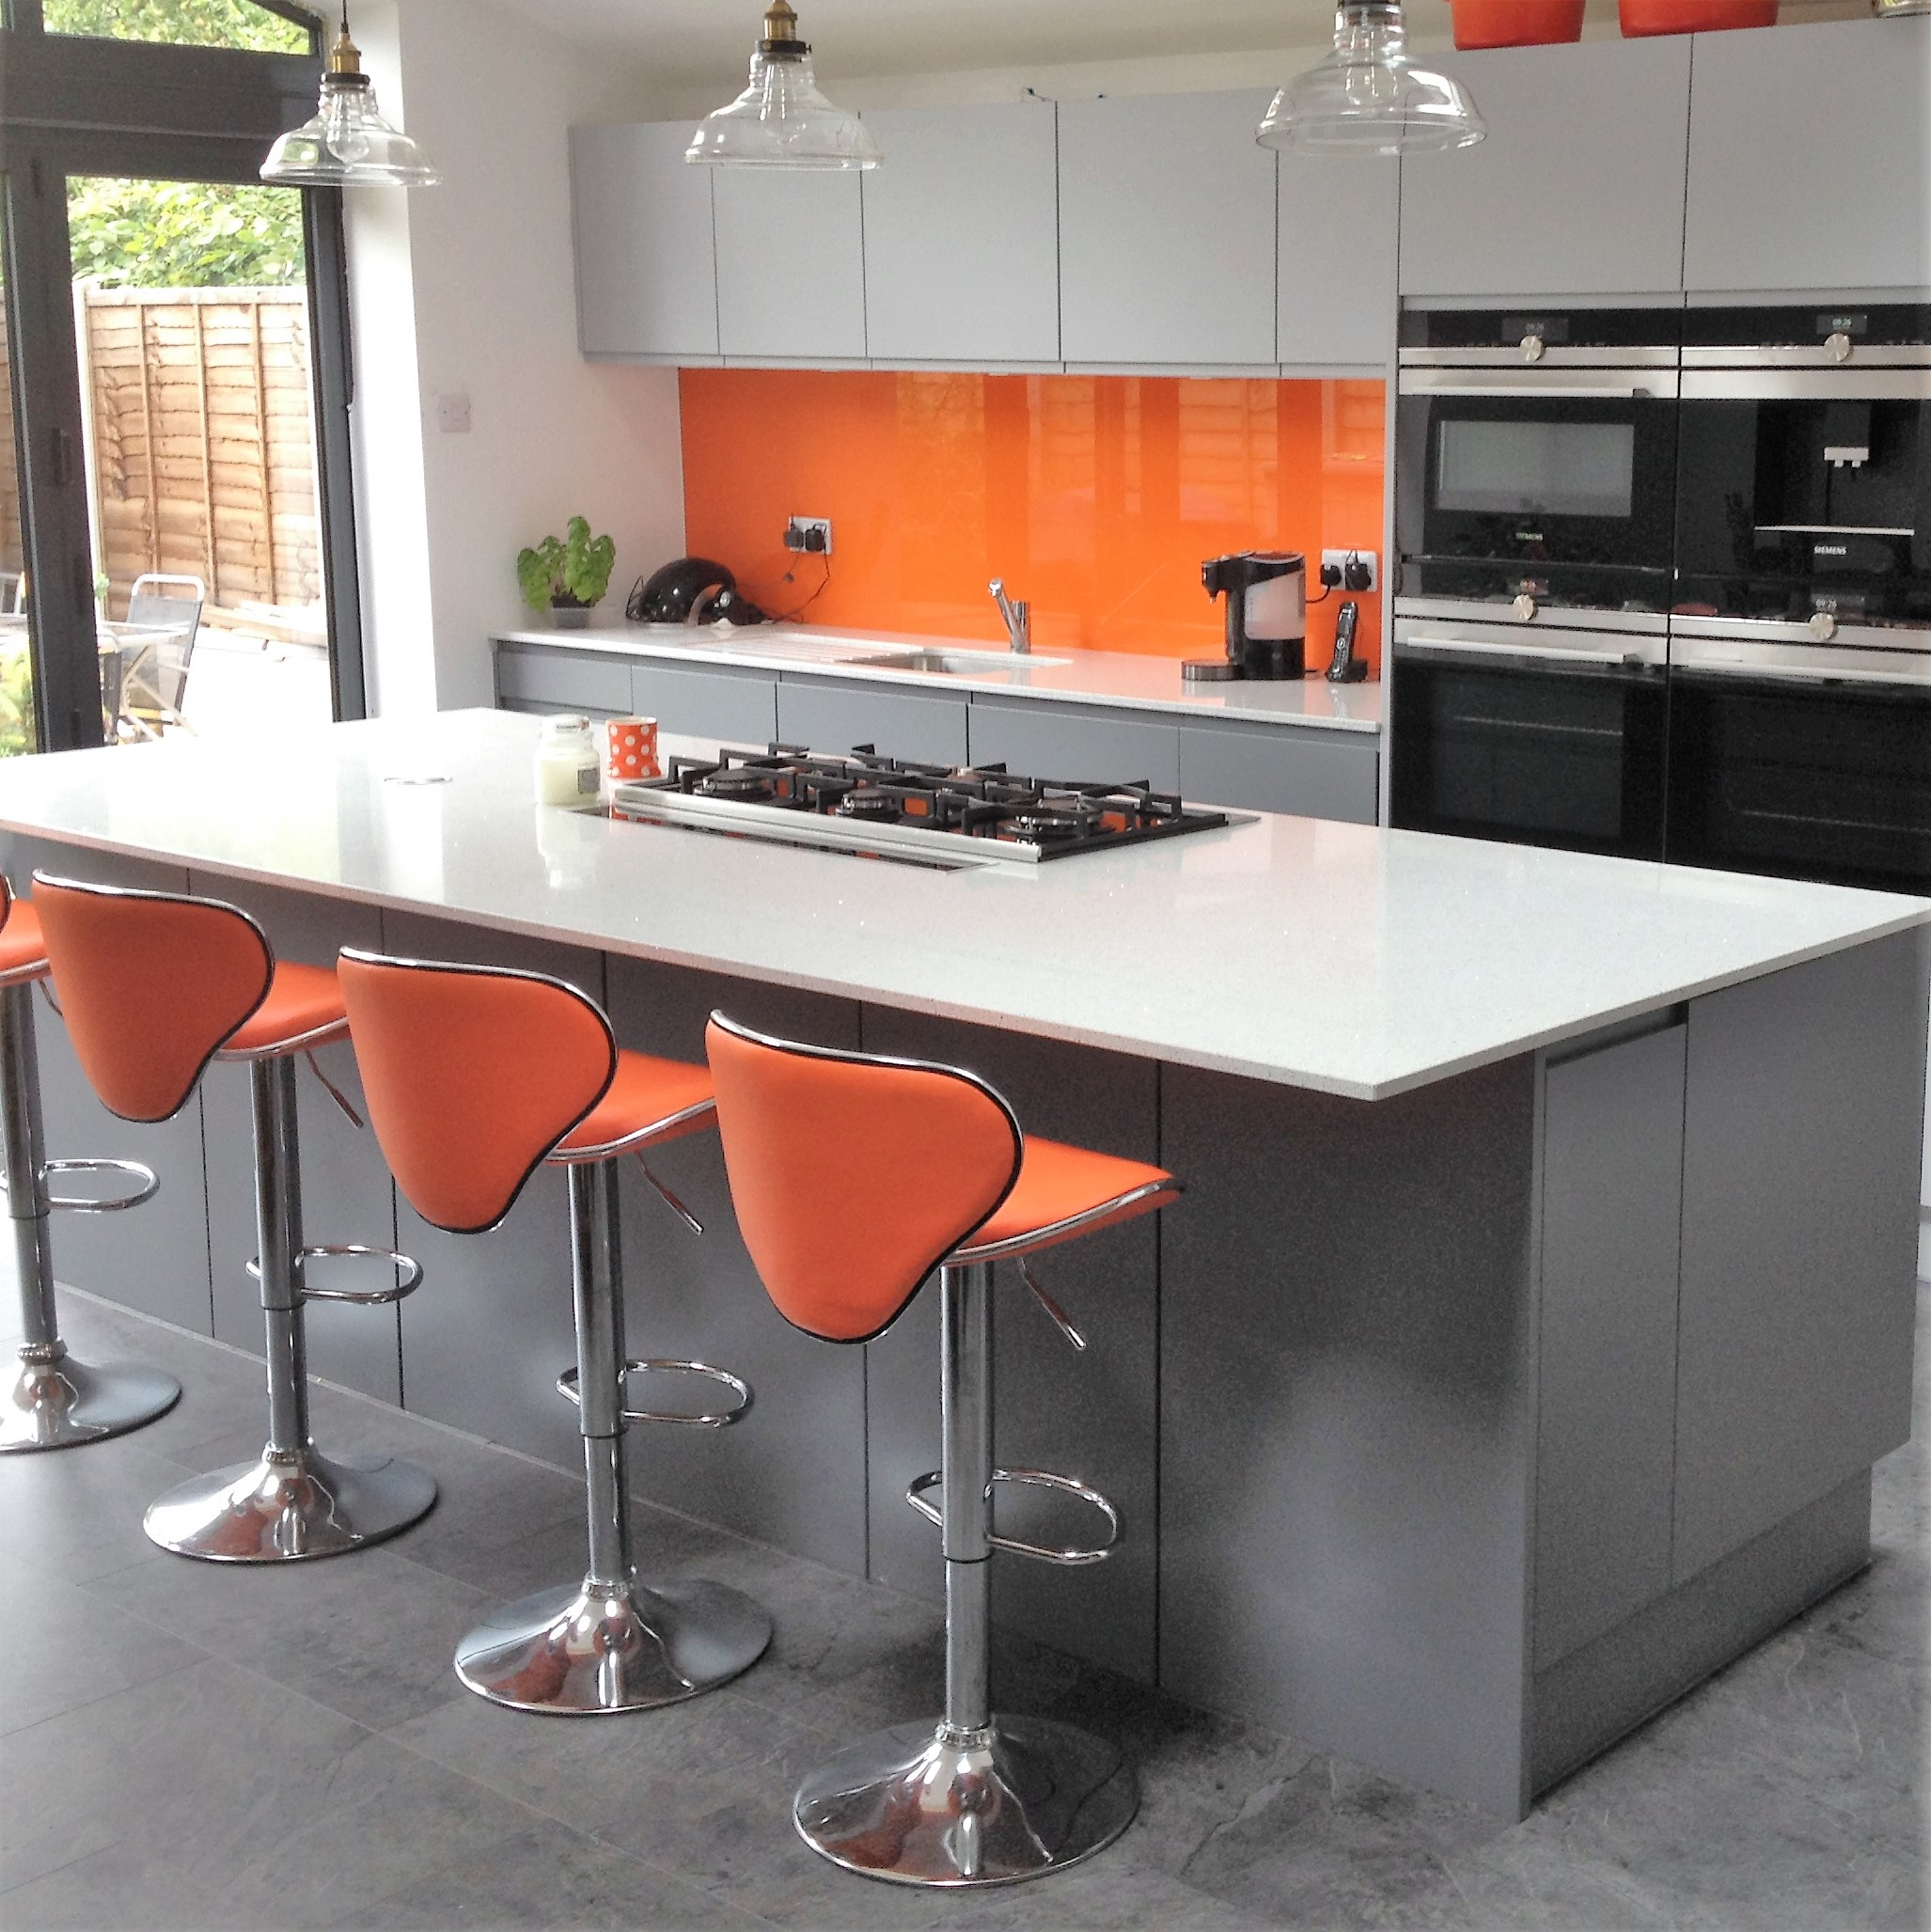 solent kitchen design bespoke kitchens southampton archives solent kitchen design 2401